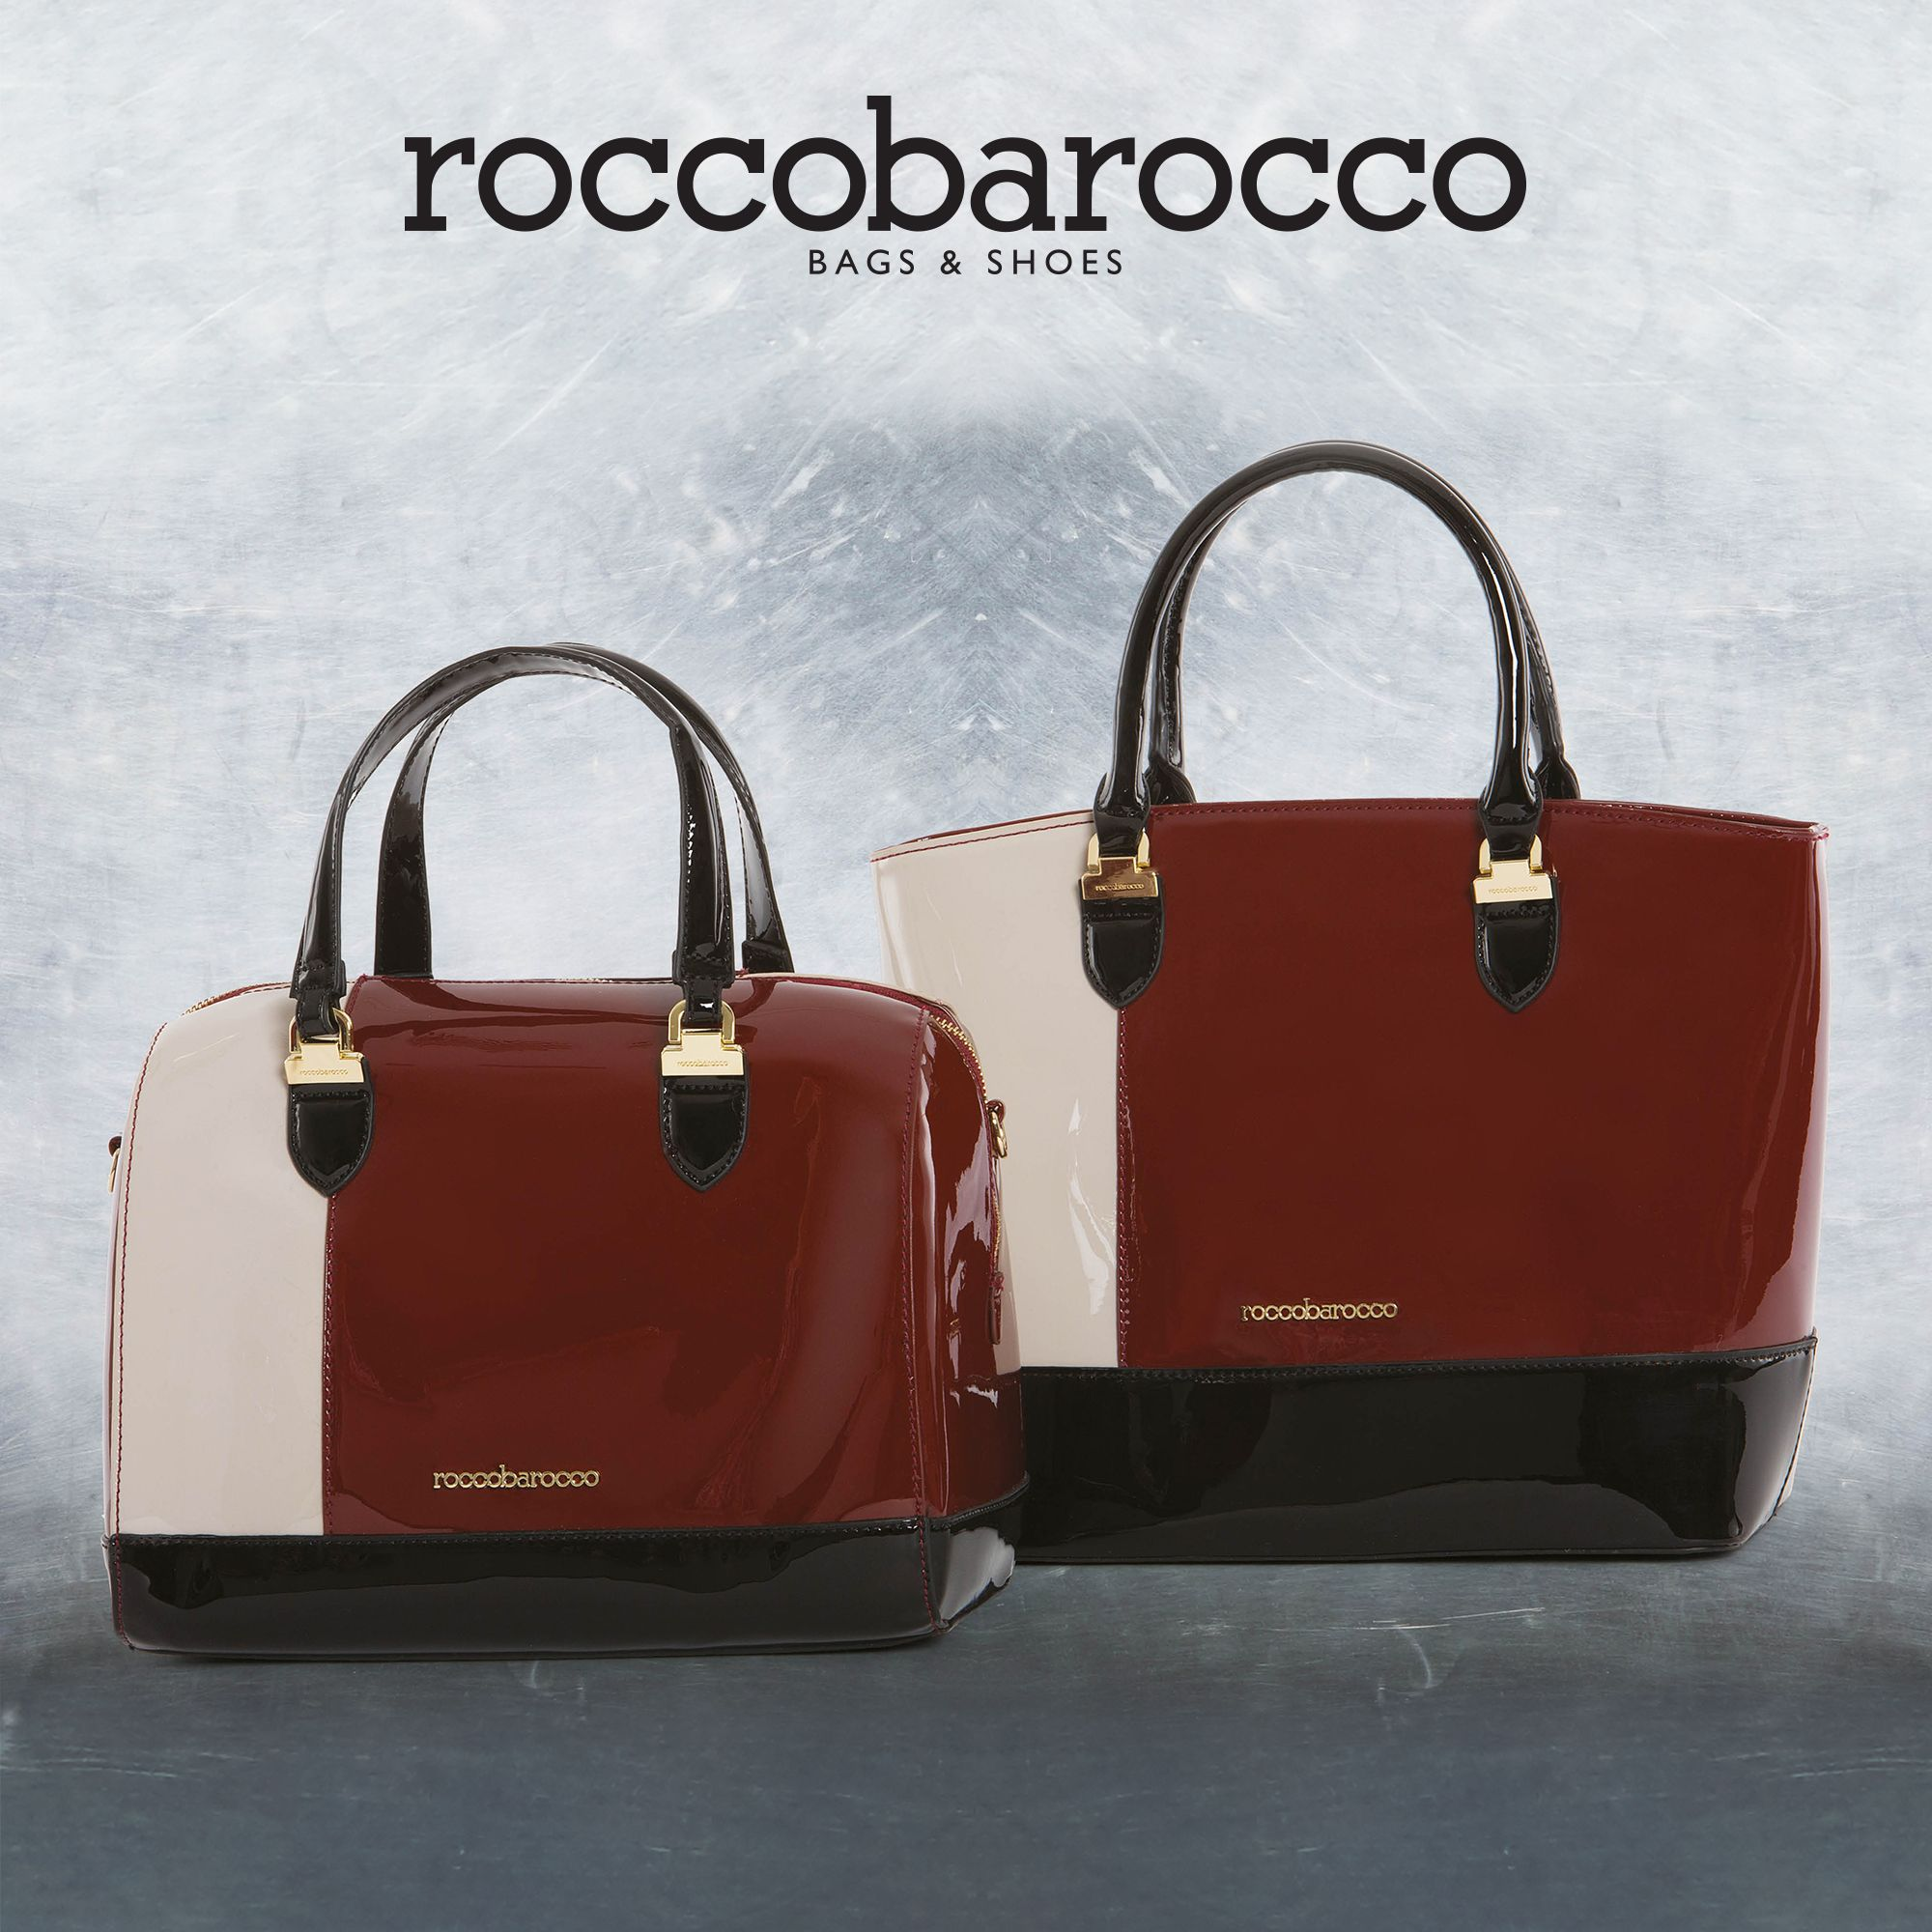 Eleanor di #roccobarocco la #borsa rigida in vernice dal sofisticato accostamento tricolor. La trovi da #Miriade cerca il negozio più vicino a te al http://www.miriadespa.it/stores.html #bags #bag #miriade #shopping #musthave #moda #accessori #modadonna #fashion #trendy #newcollection #fallwinter2016